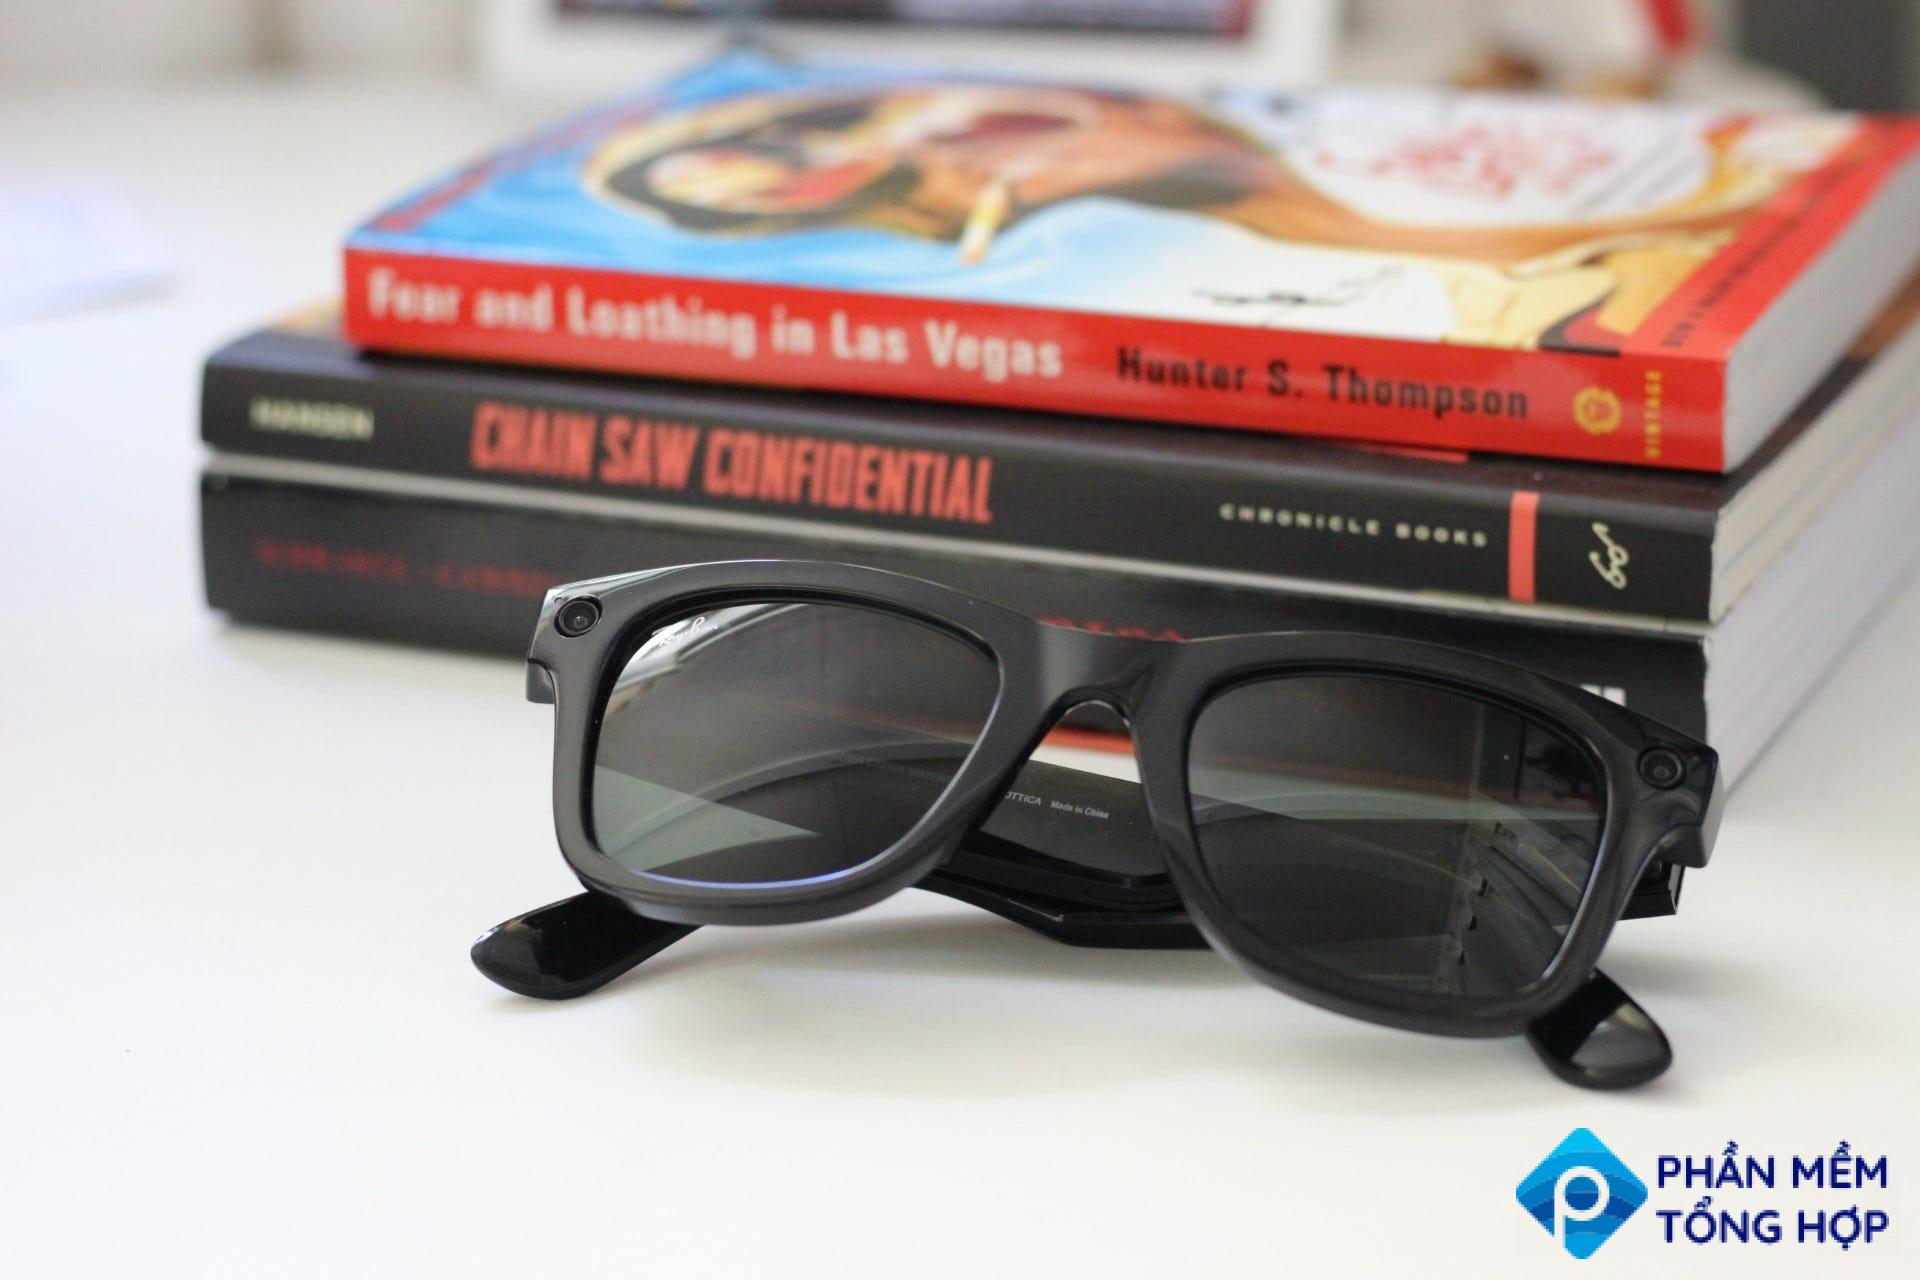 Ray-Ban Stories on a desk in front of some books